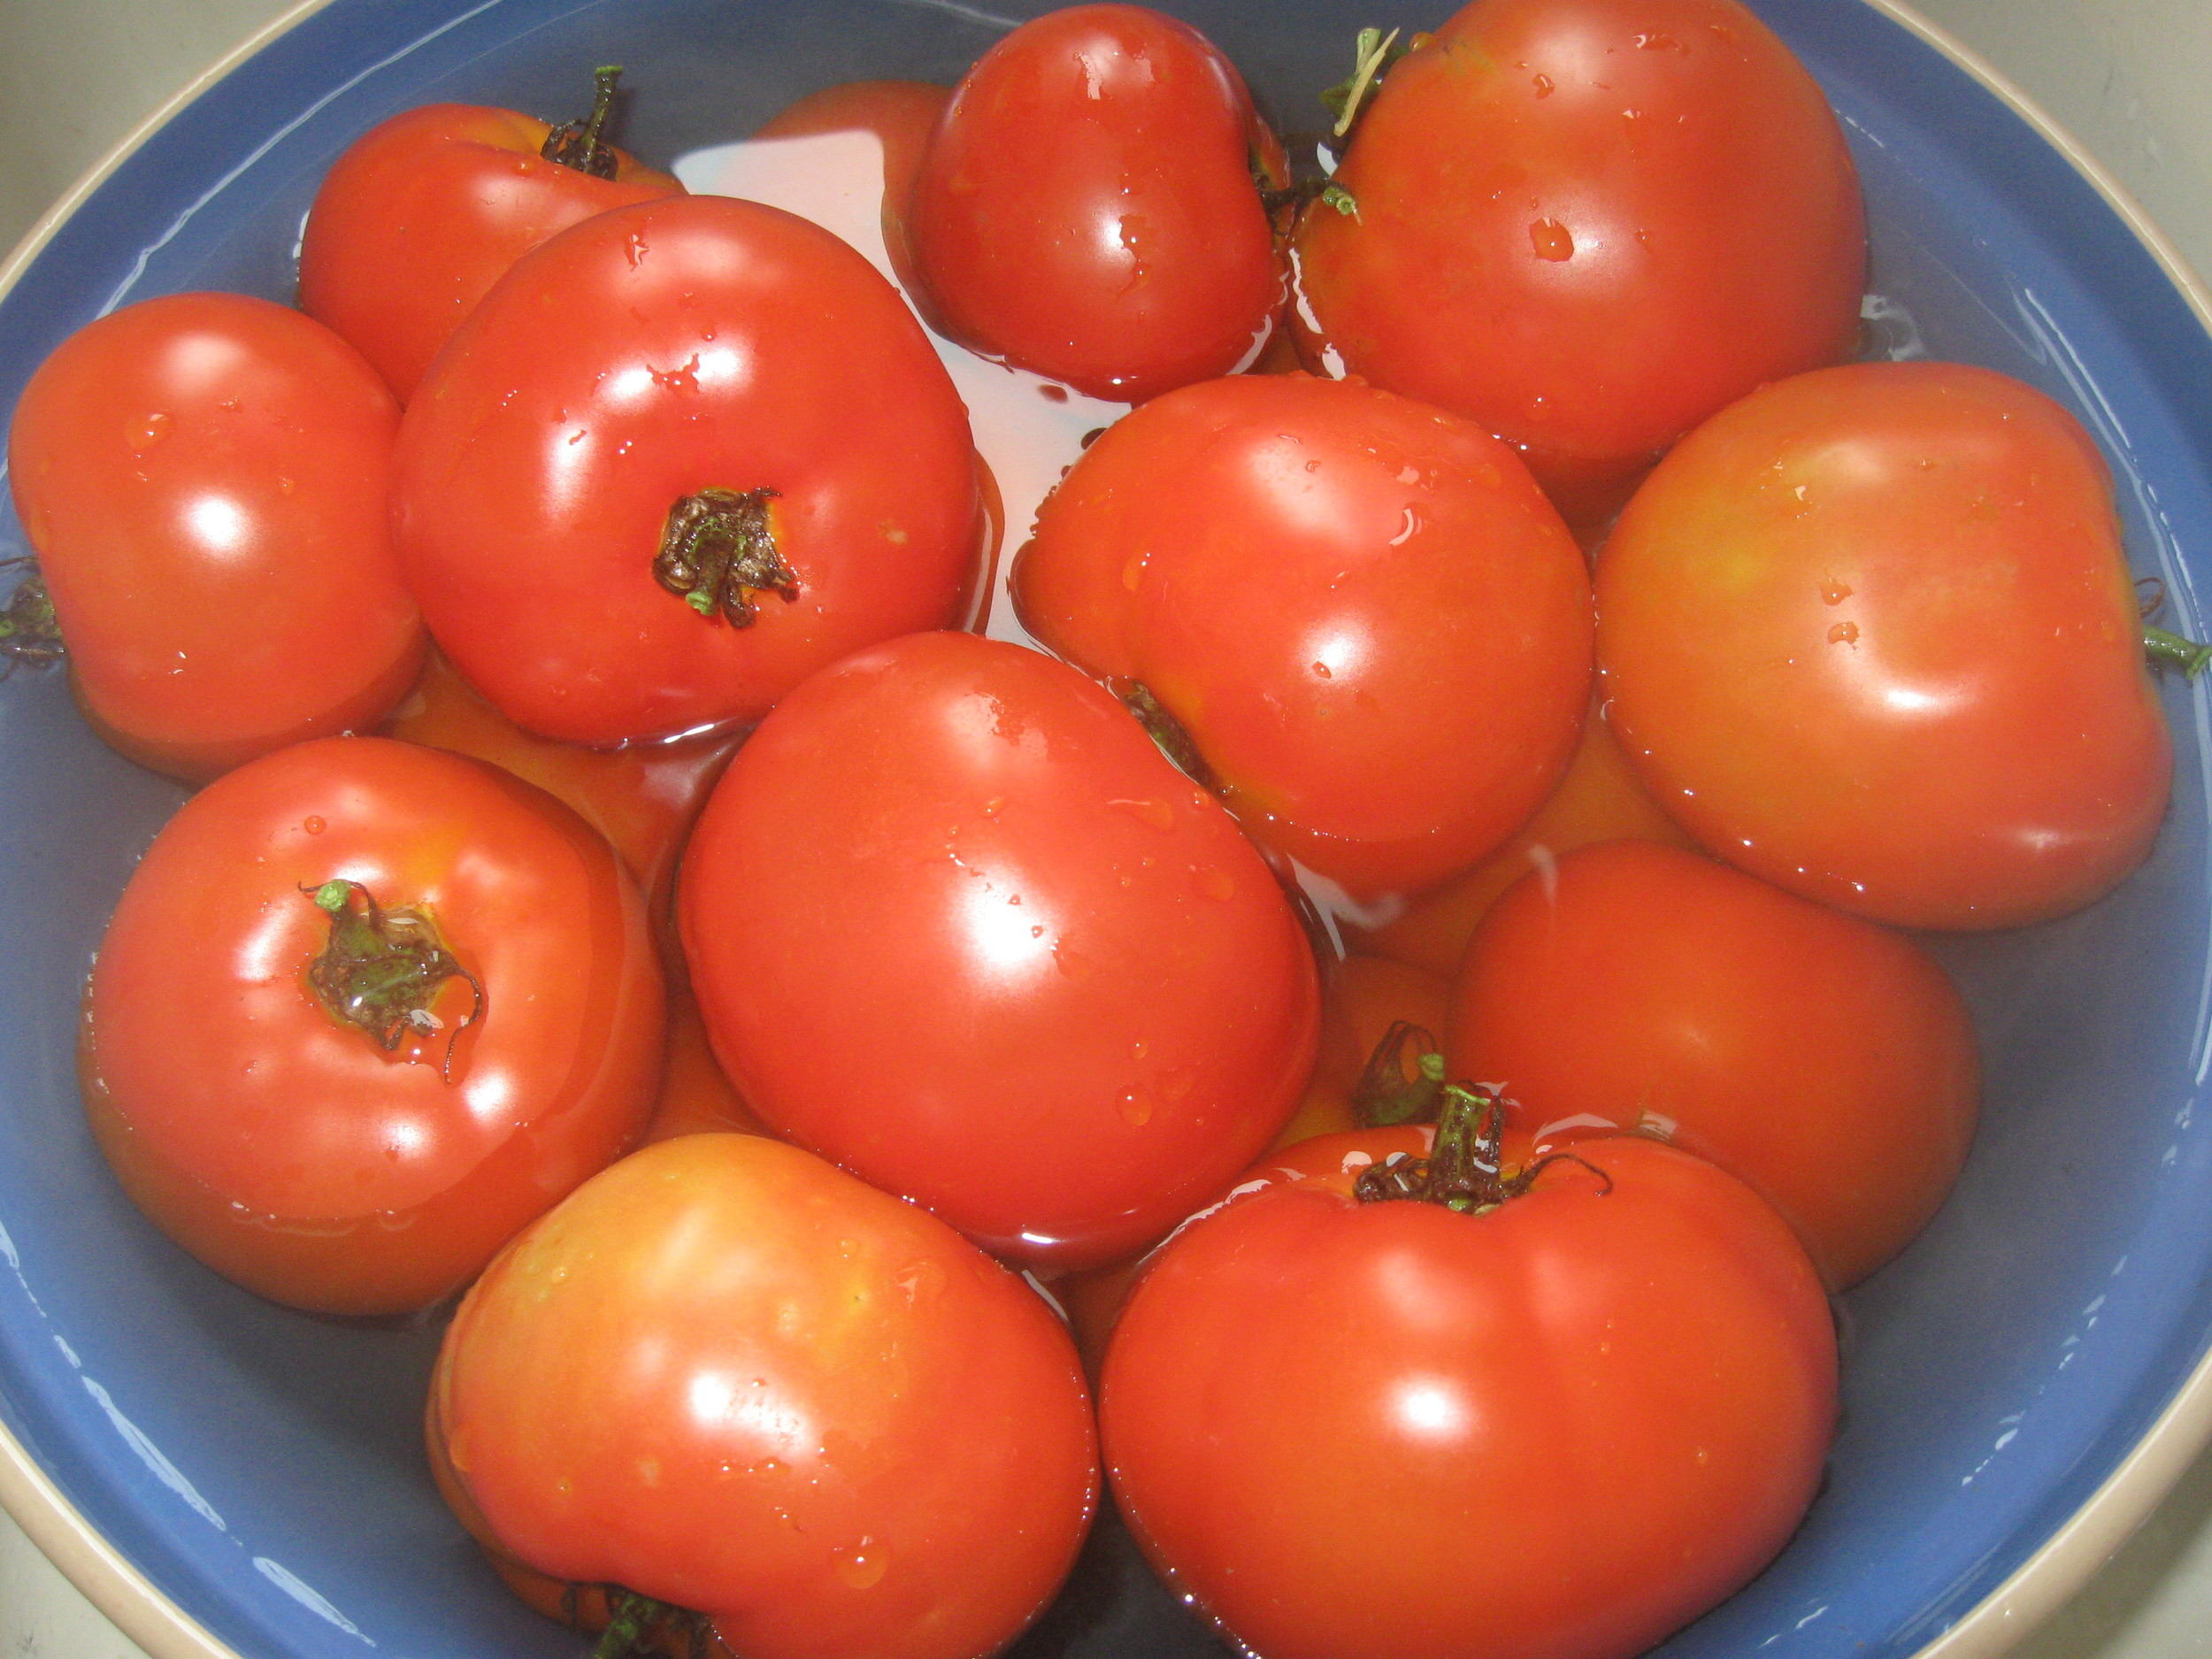 Yummy red tomatoes...